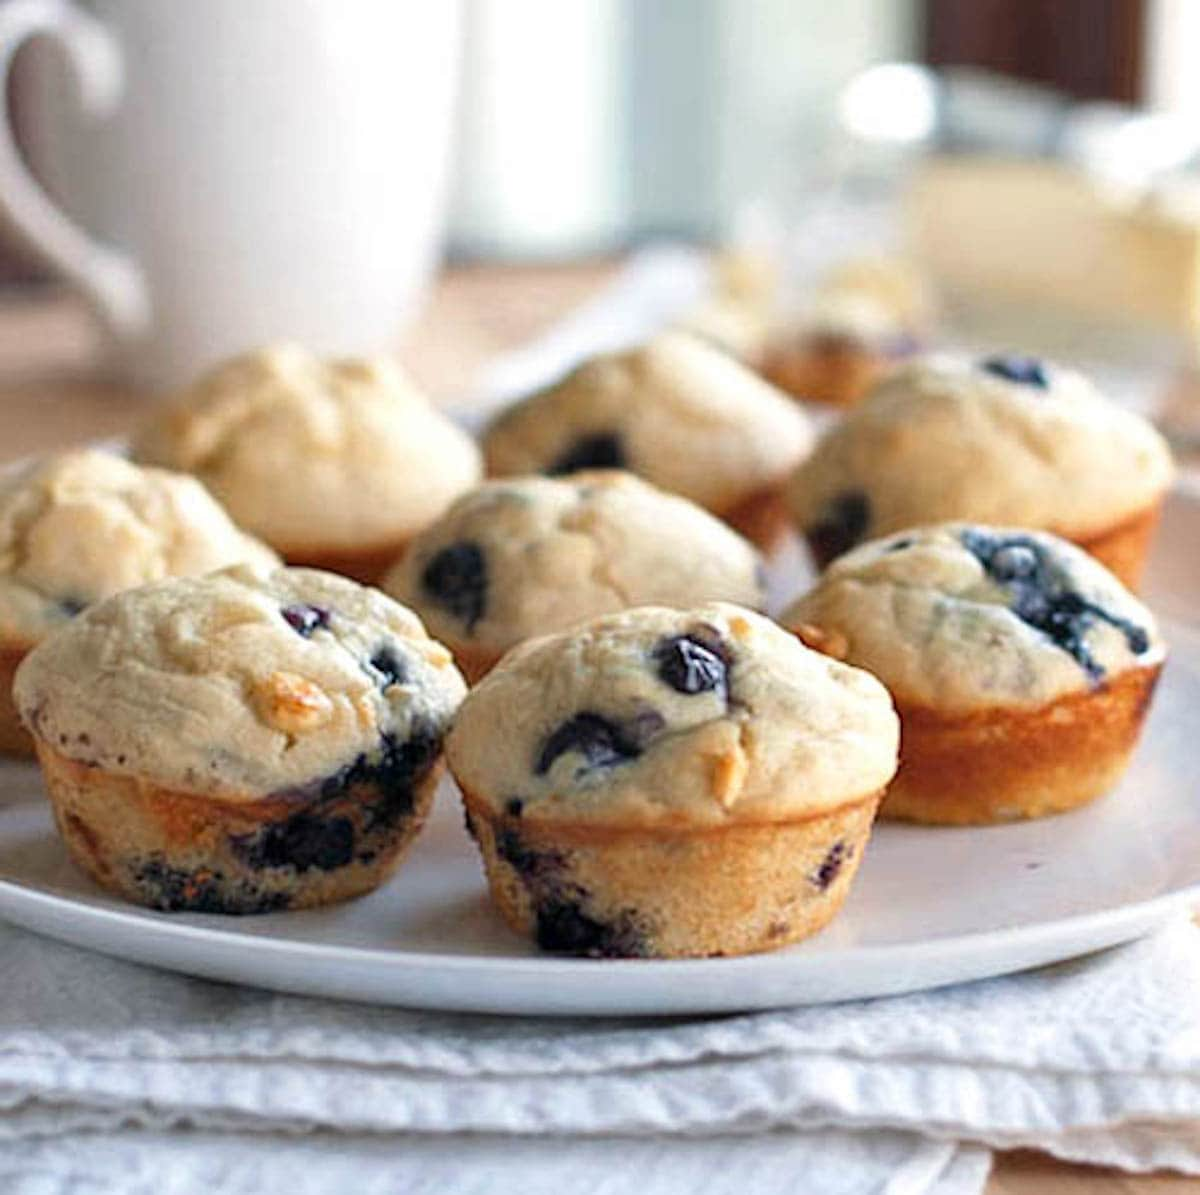 White chocolate blueberry muffins auf einem Teller.